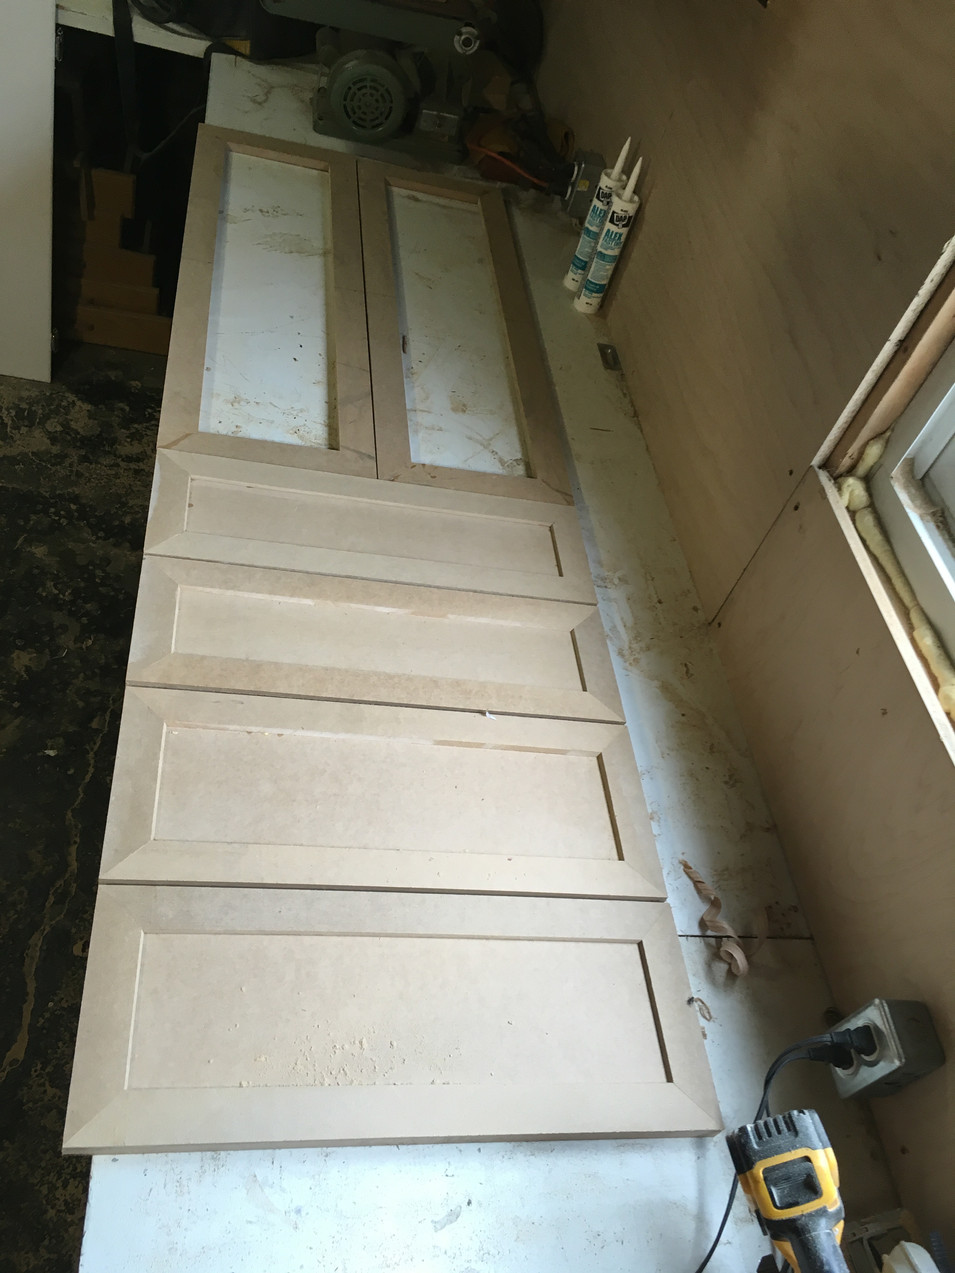 Custom made doors and drawers for the built-ins.